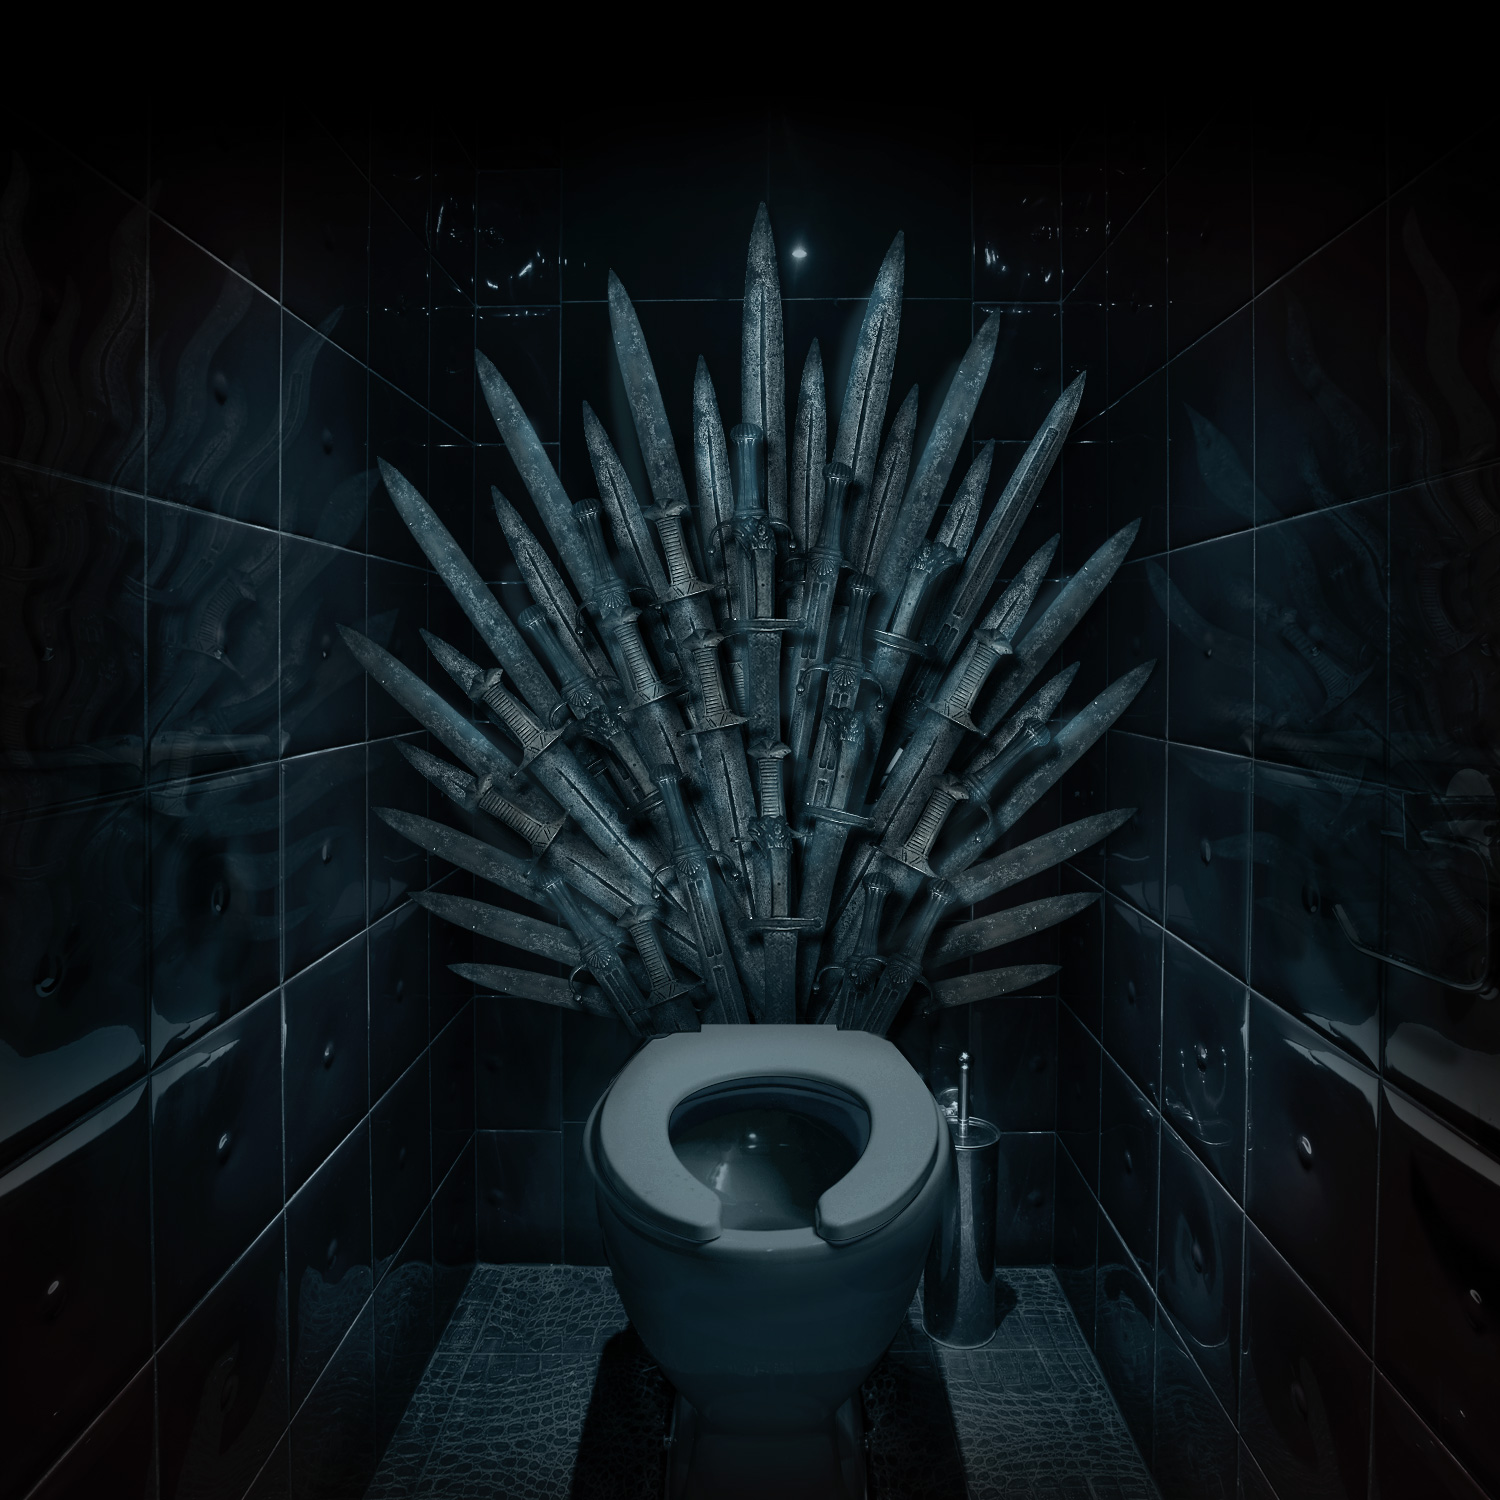 Astonishing Game Of Thrones Actor Related To Flushing Toilet Inventor Lamtechconsult Wood Chair Design Ideas Lamtechconsultcom